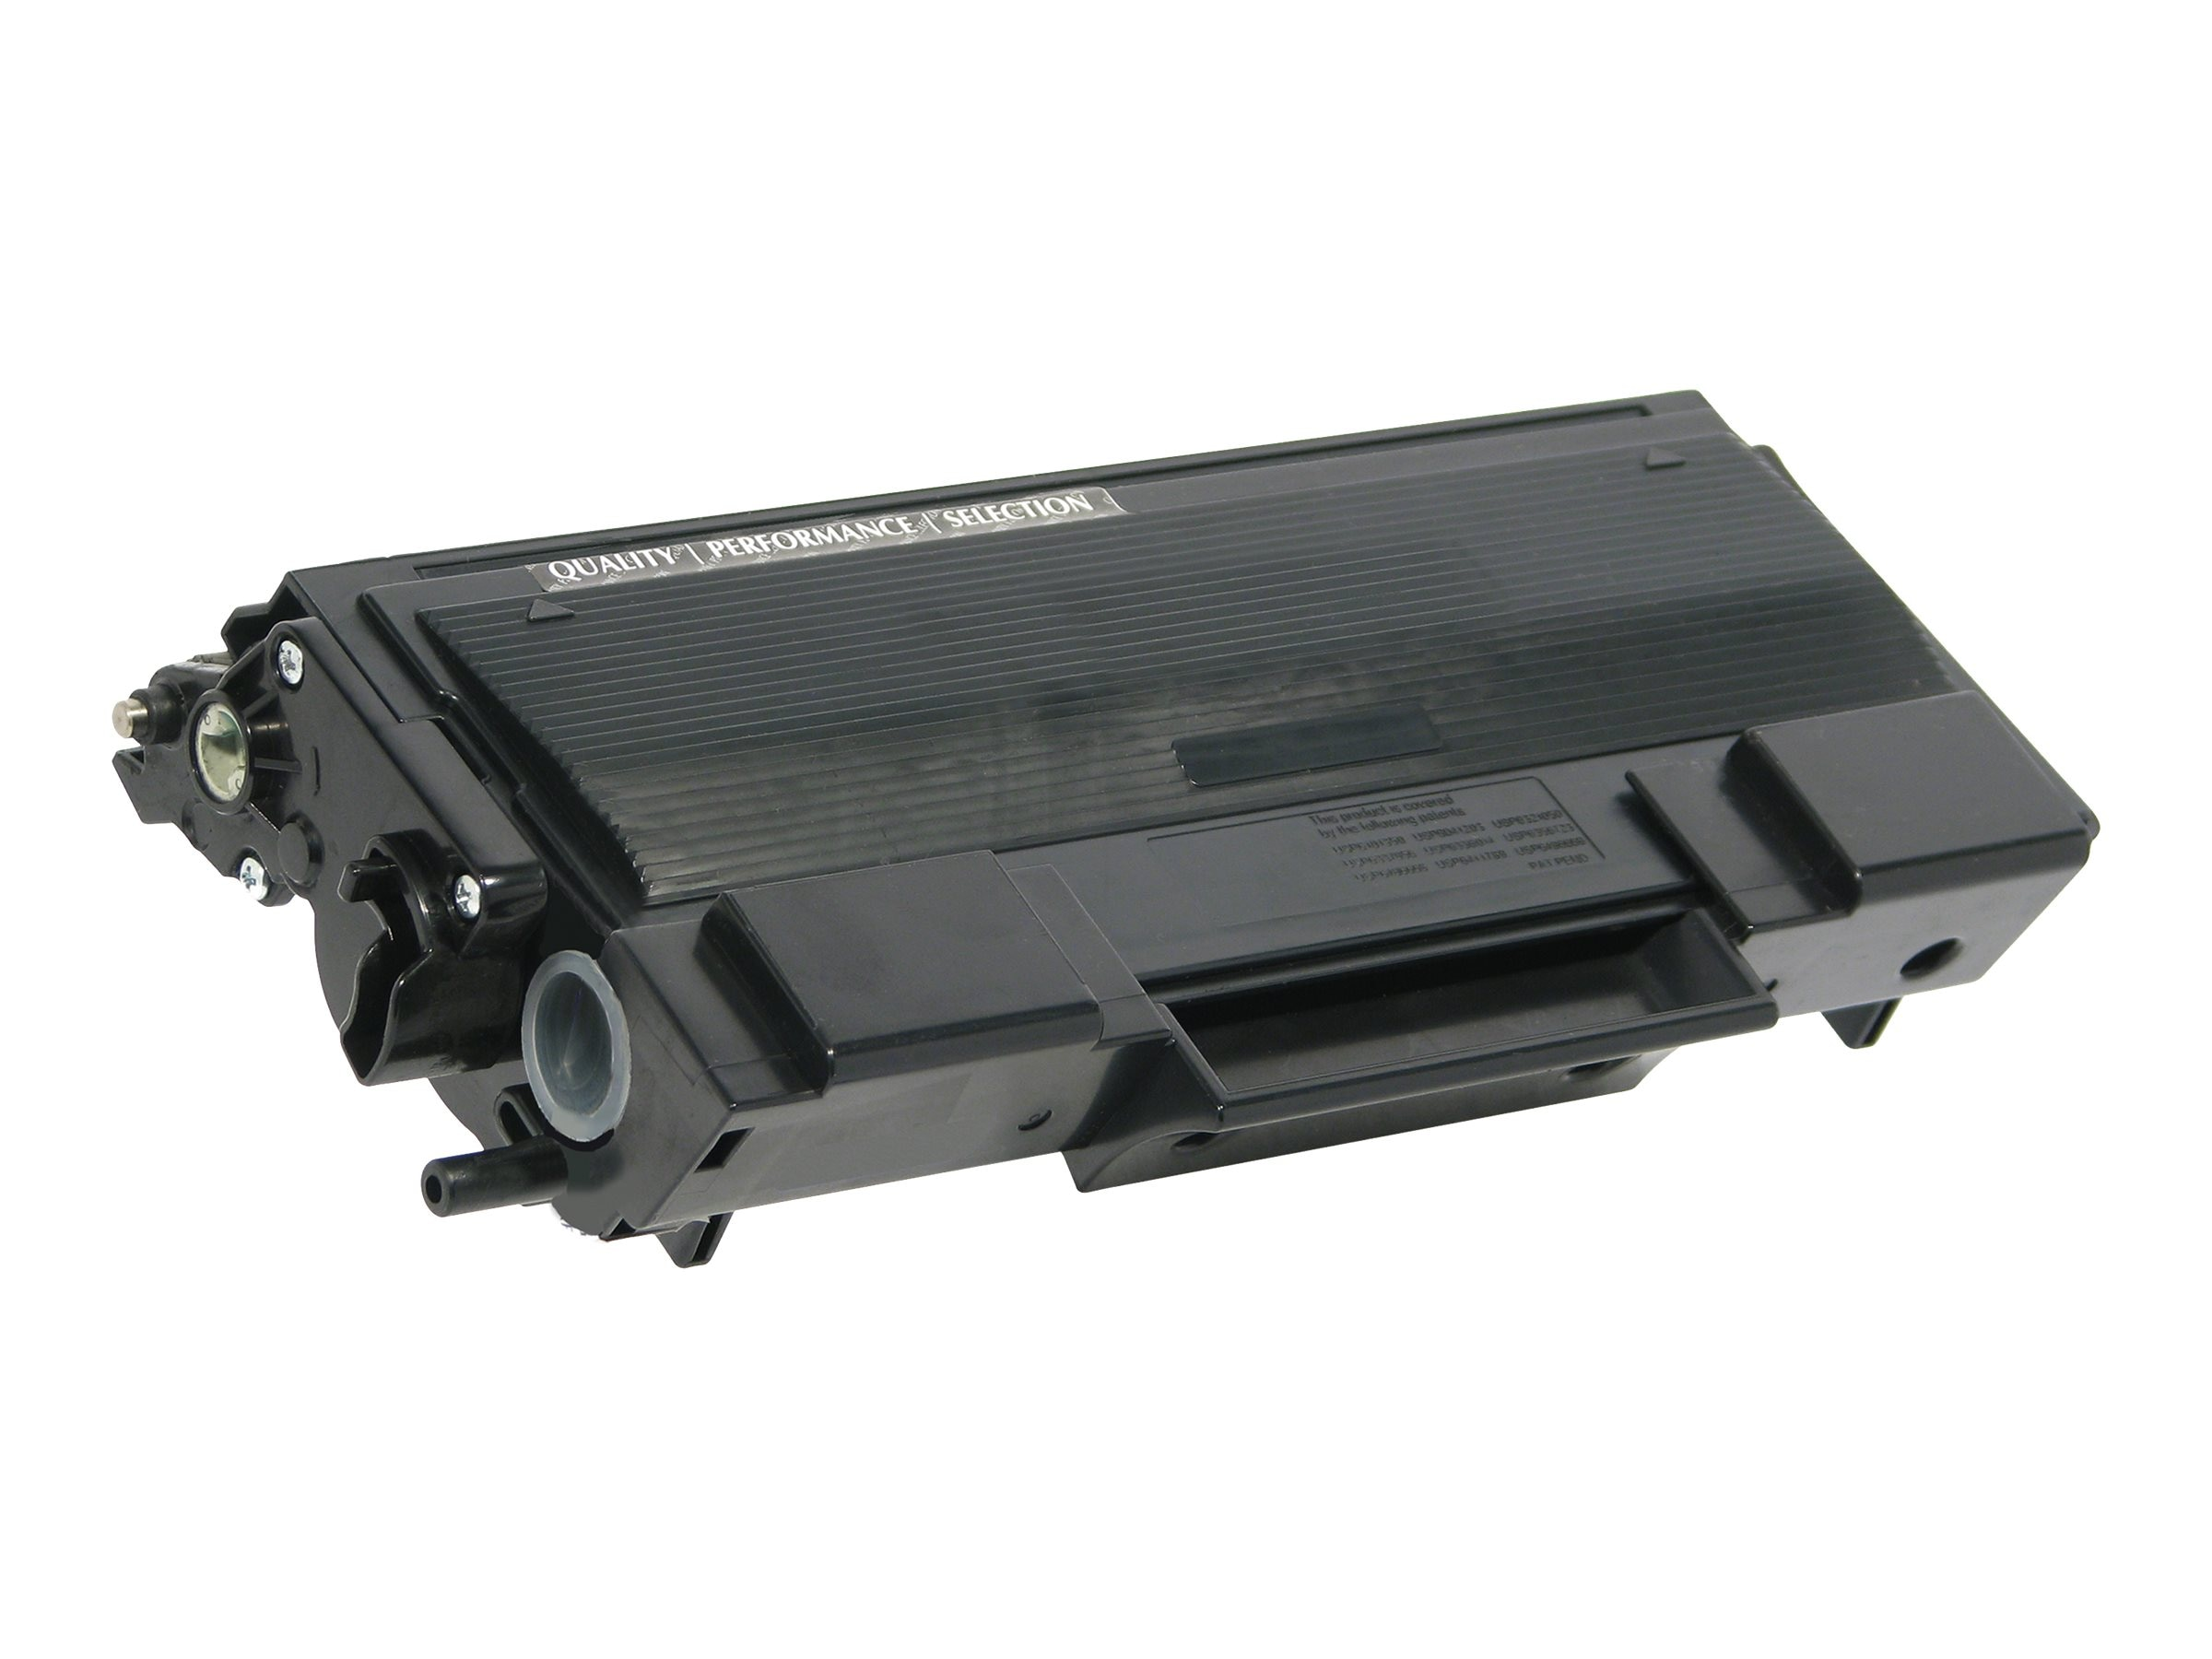 V7 TN670 Black Toner Cartridge for Br0ther HL-6050D & HL-6050DN, TBK2N670, 11475870, Toner and Imaging Components